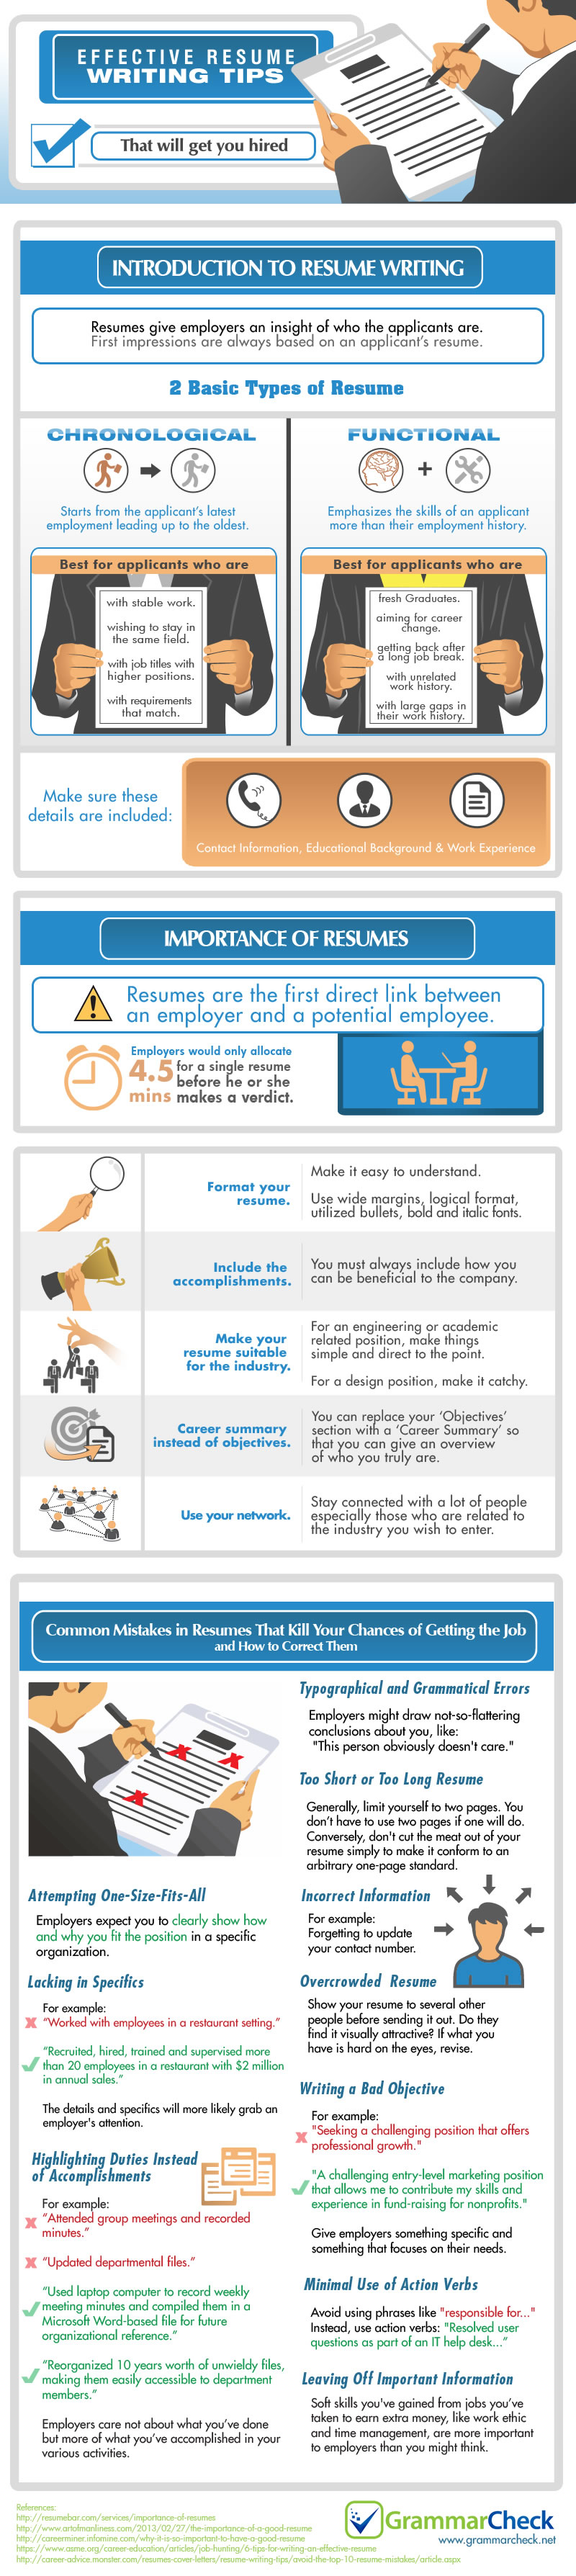 Effective Resume Writing Tips Infographic